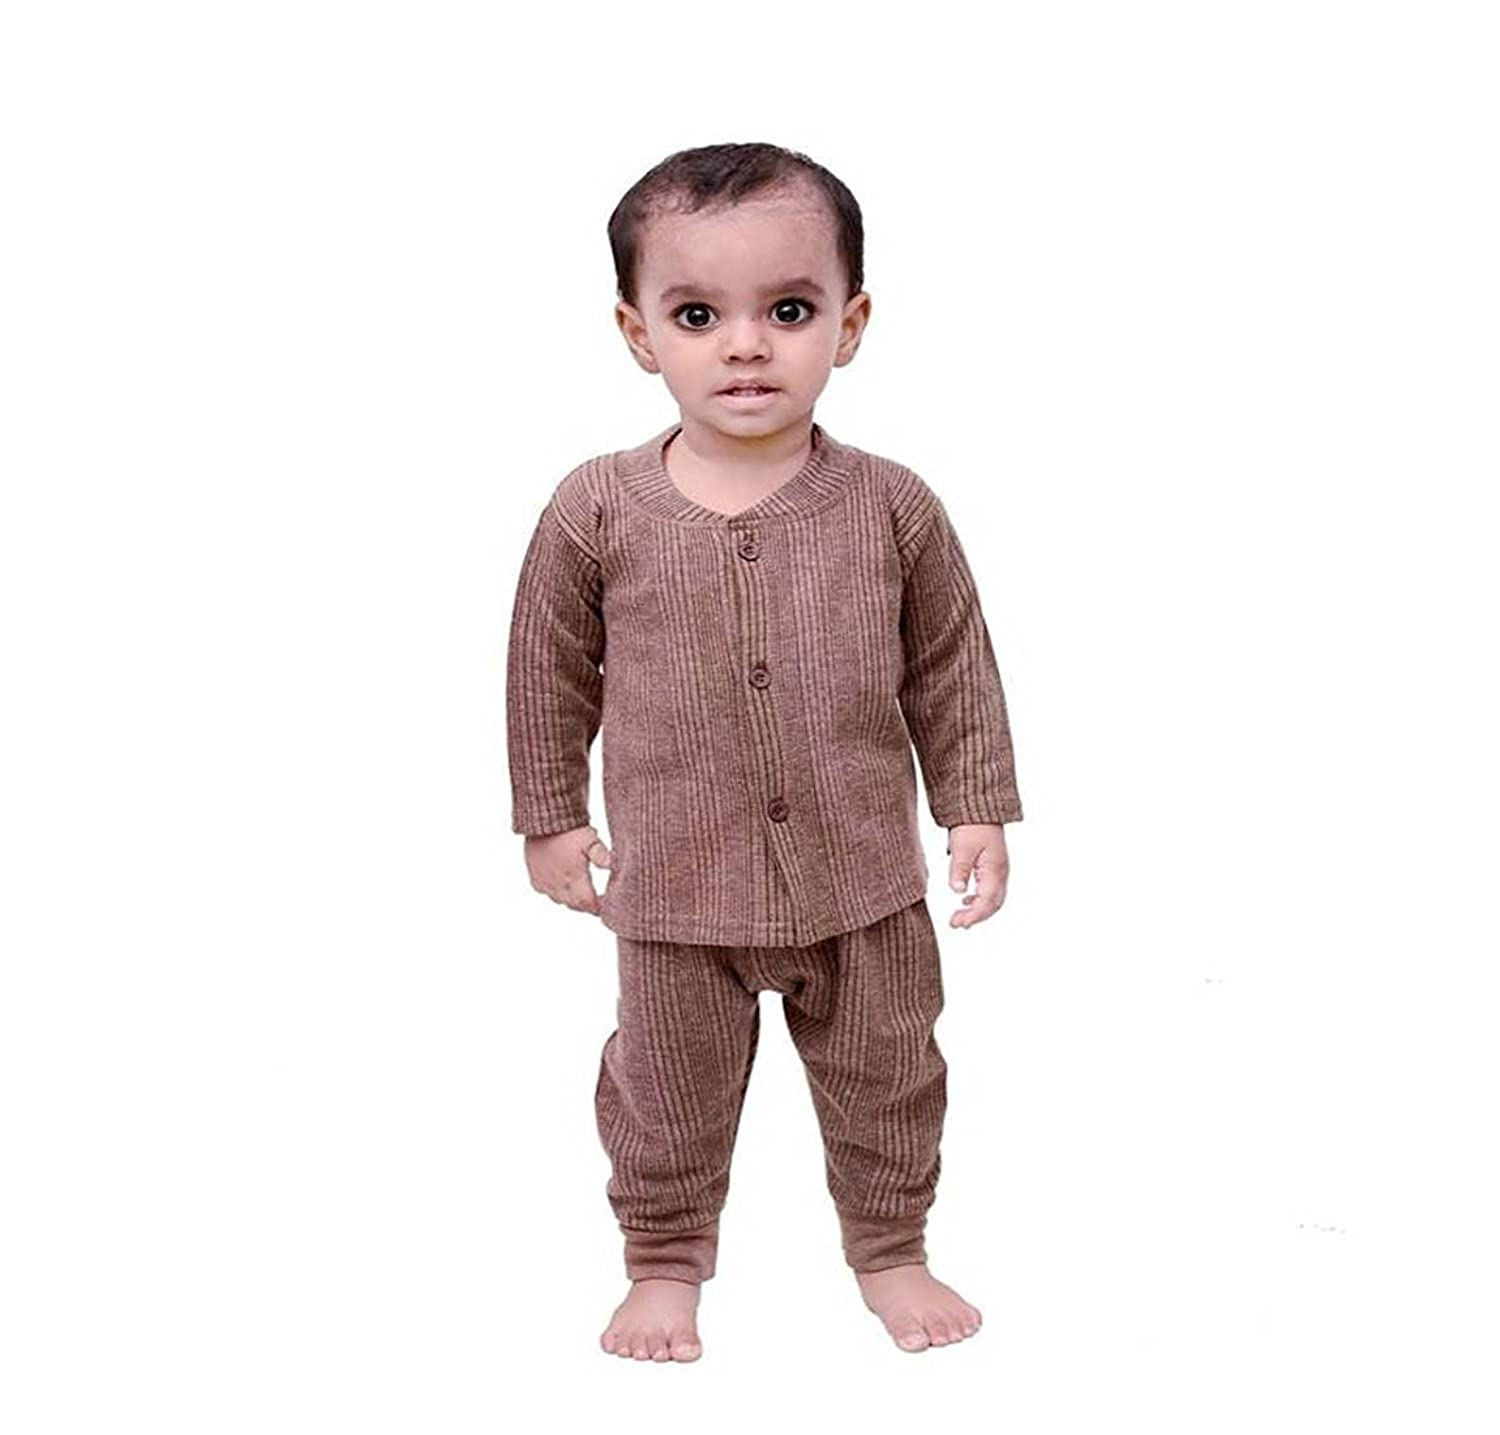 0eb86095e21 Mahi Fashion Baby's Front Open Thermal Suit Top & Pajama Set - Pack of 3:  Amazon.in: Clothing & Accessories